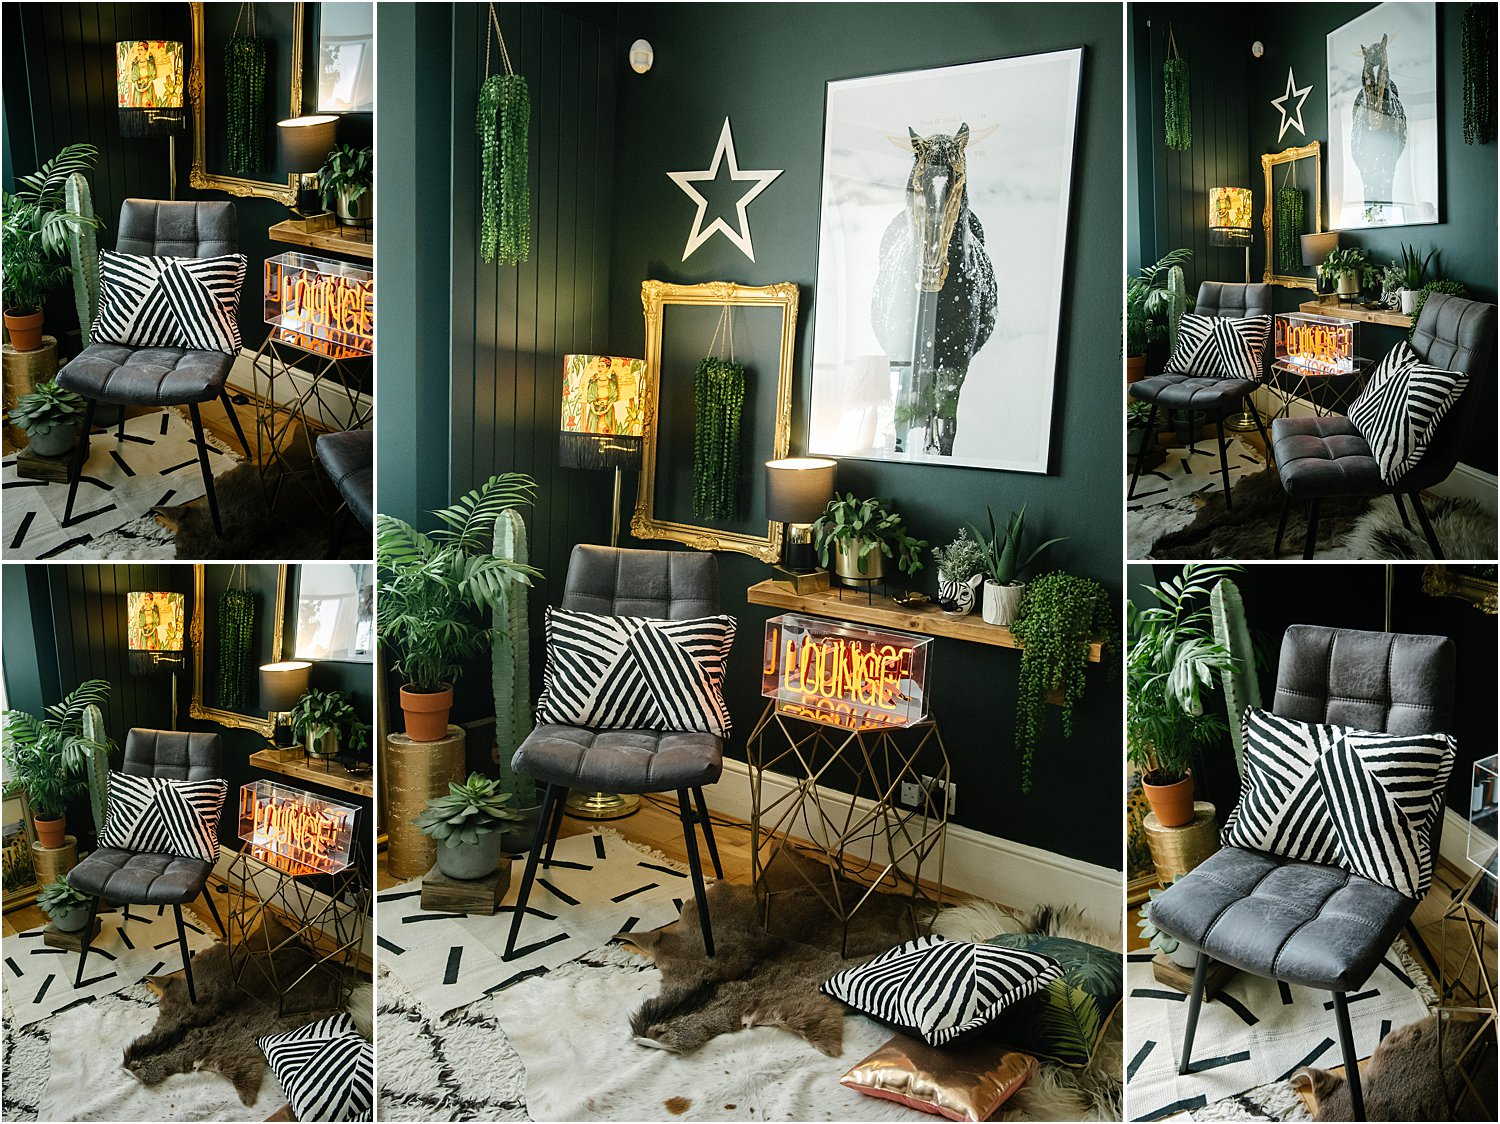 product-photography-layered-home-styling-lily-sawyer-photo